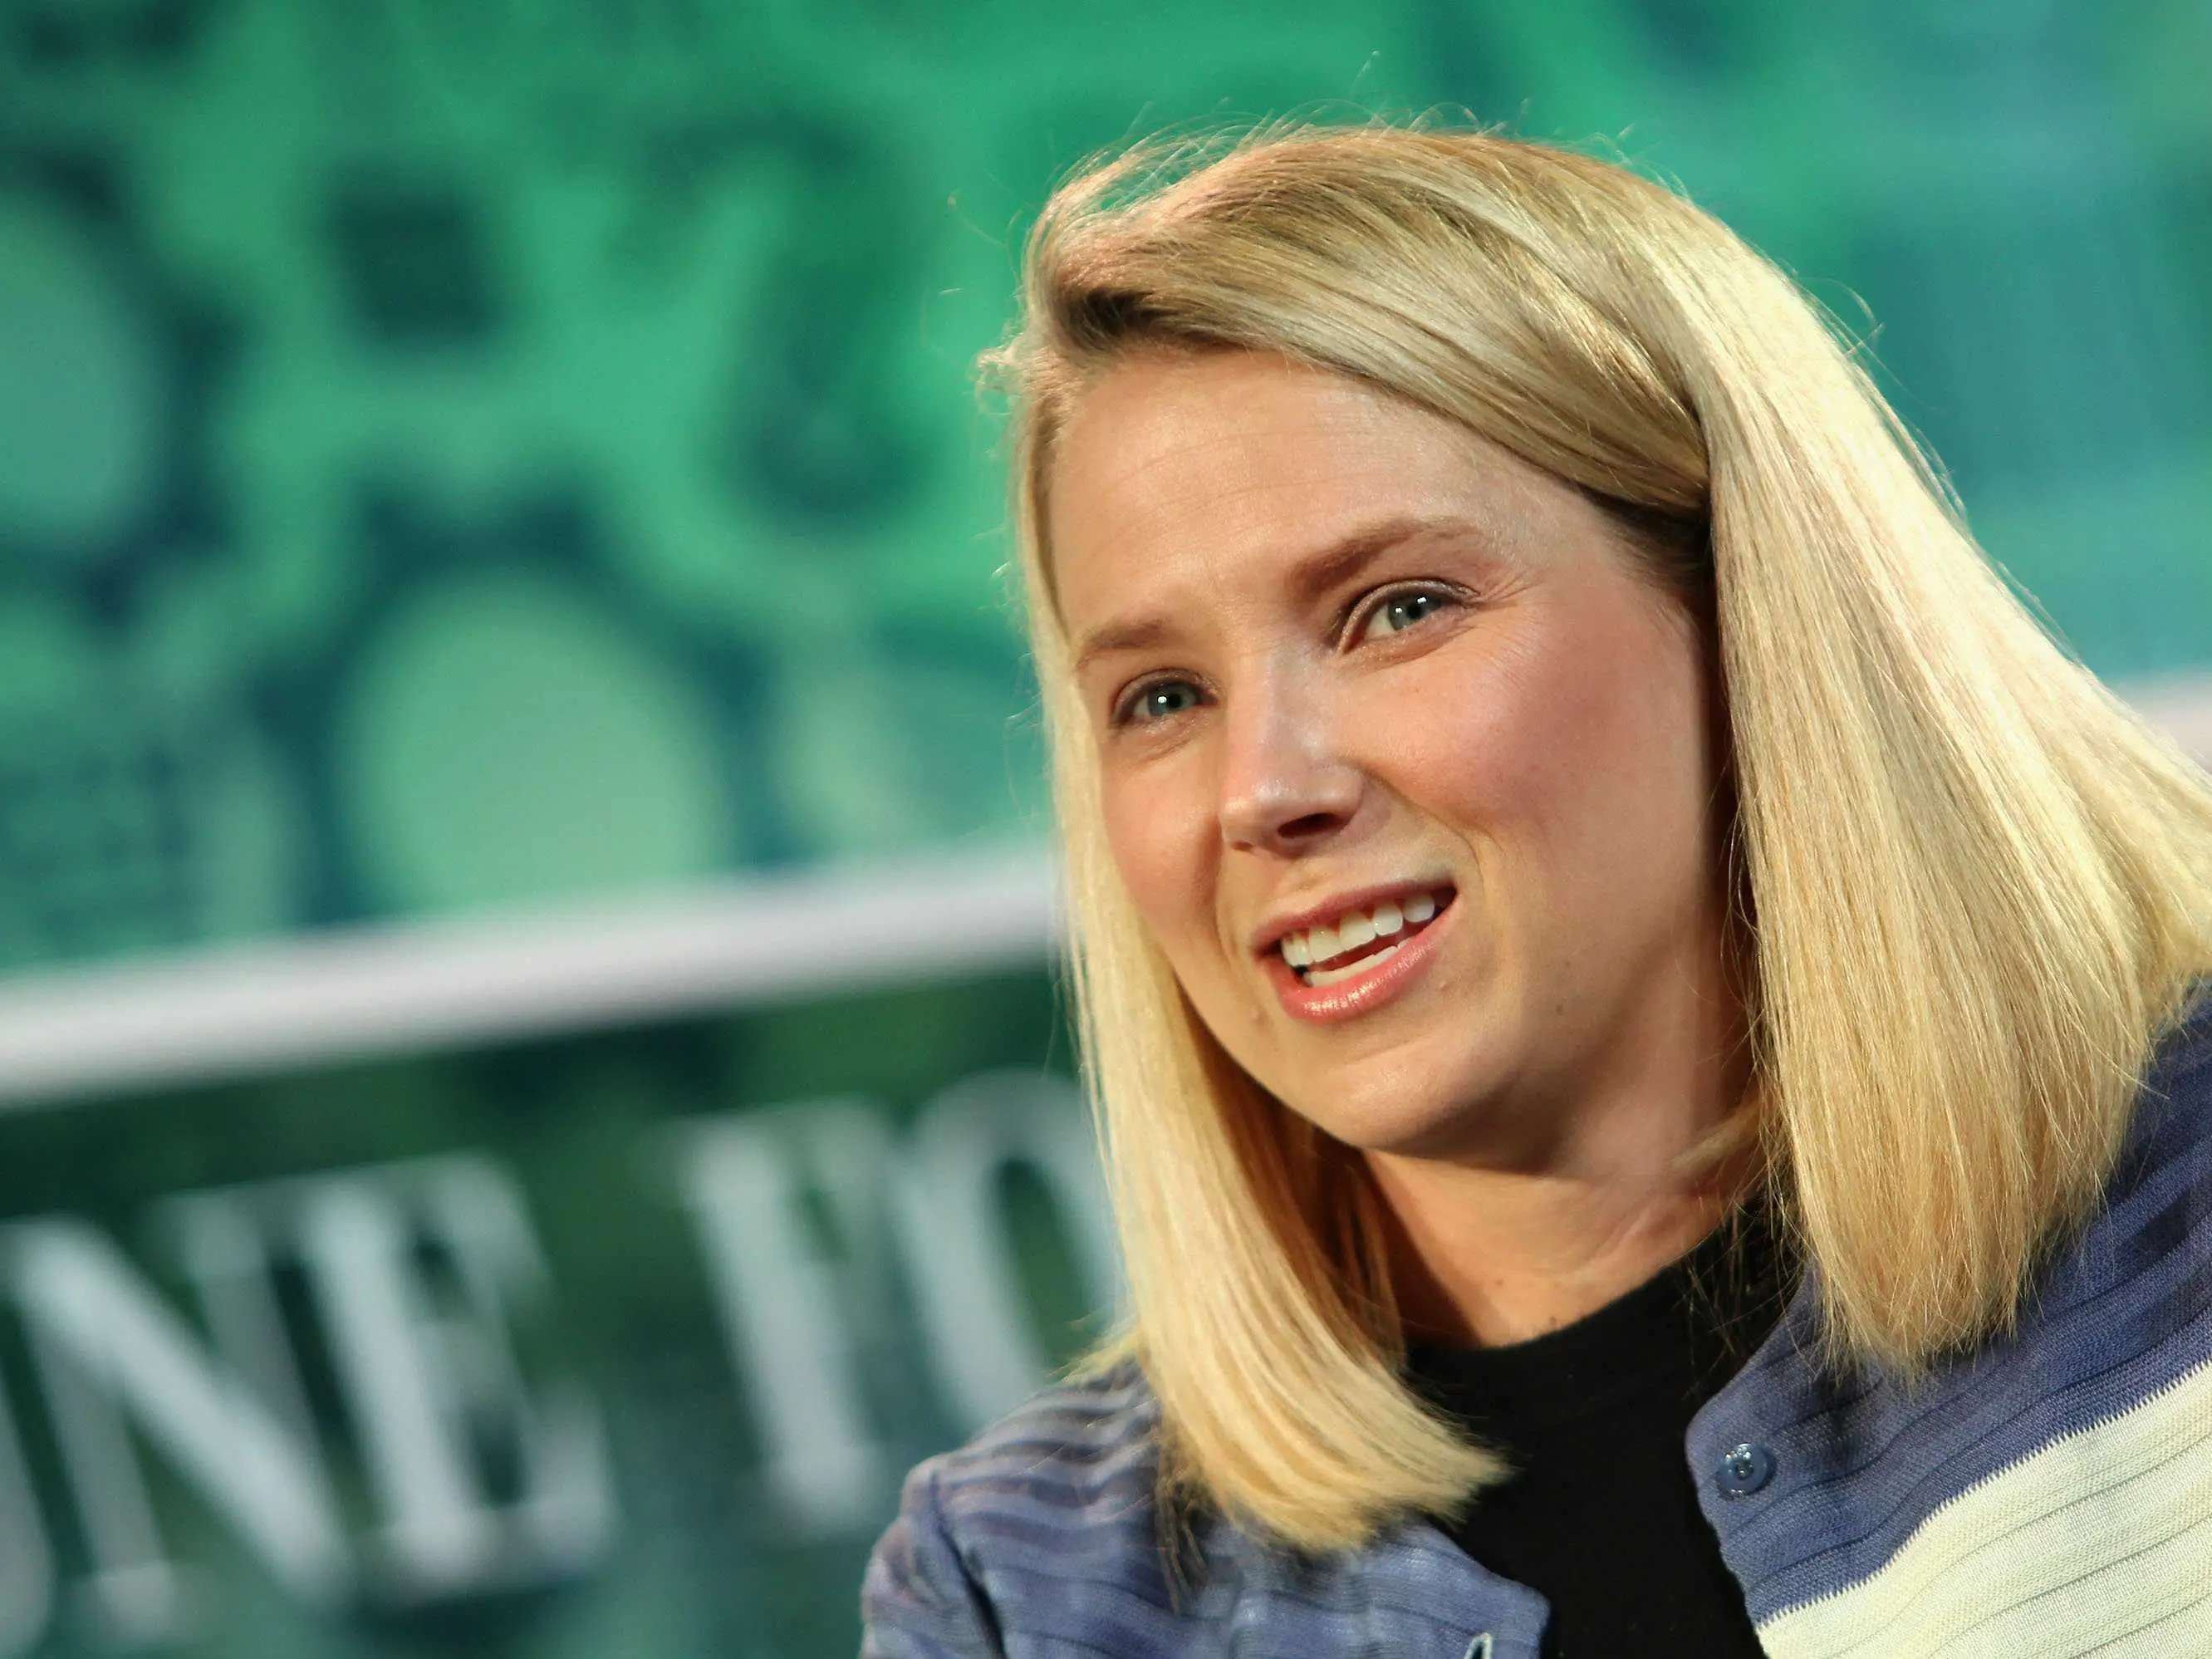 46. Yahoo! is held by 19 funds